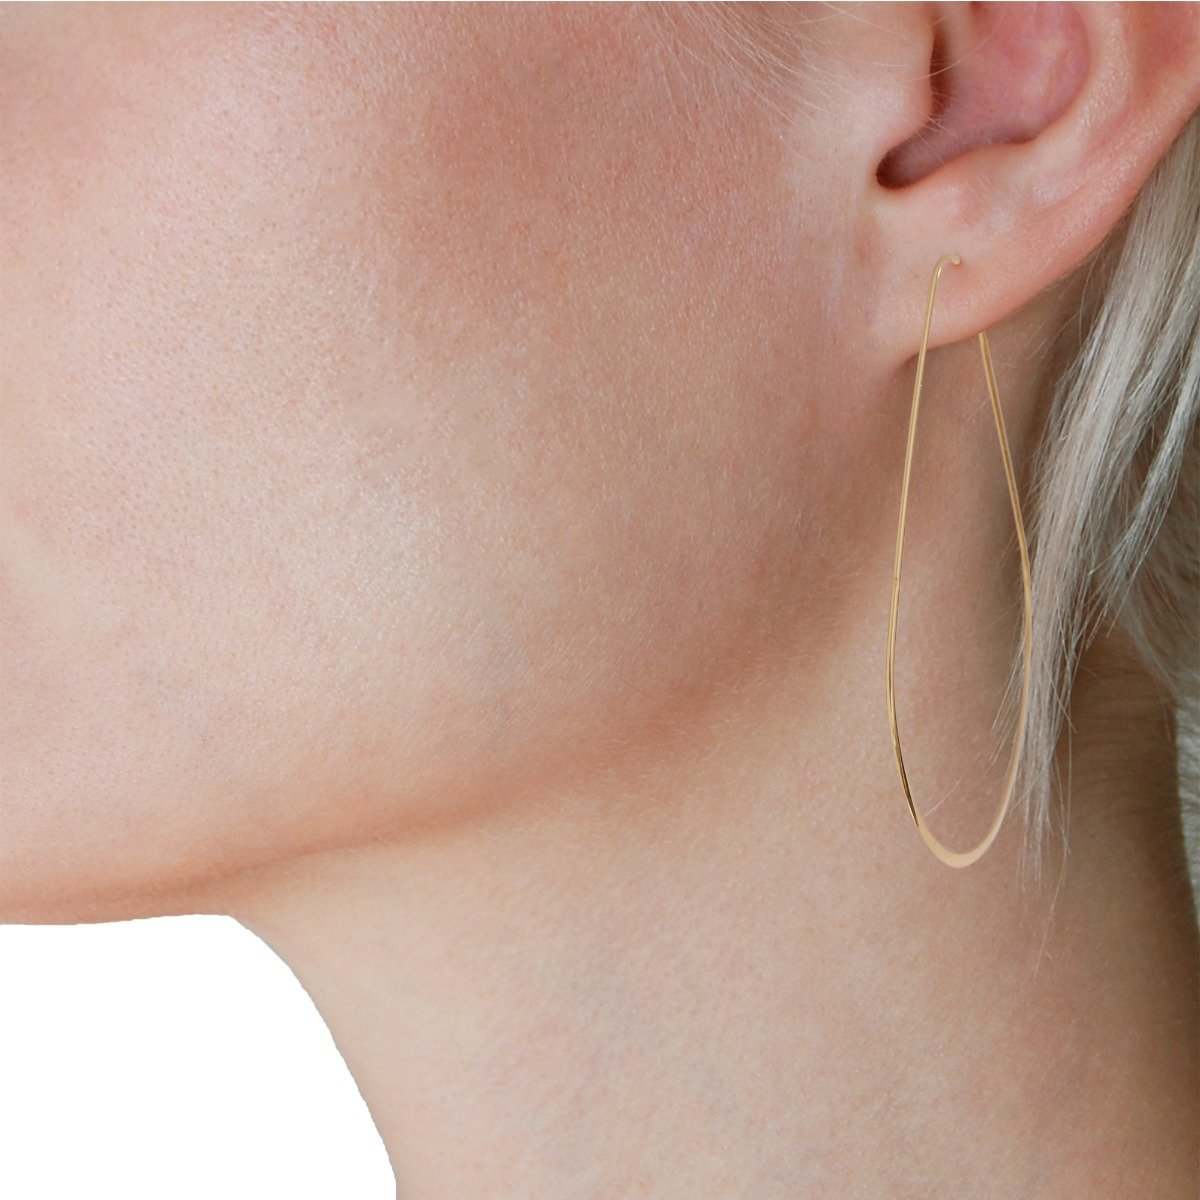 Lightweight Threader Big Hoop Earrings - Round Oval Open Geometric Drop Dangles, Oval 24K Yellow, Gold-Electroplated, Hypoallergenic, by Humble Chic NY by Humble Chic NY (Image #3)